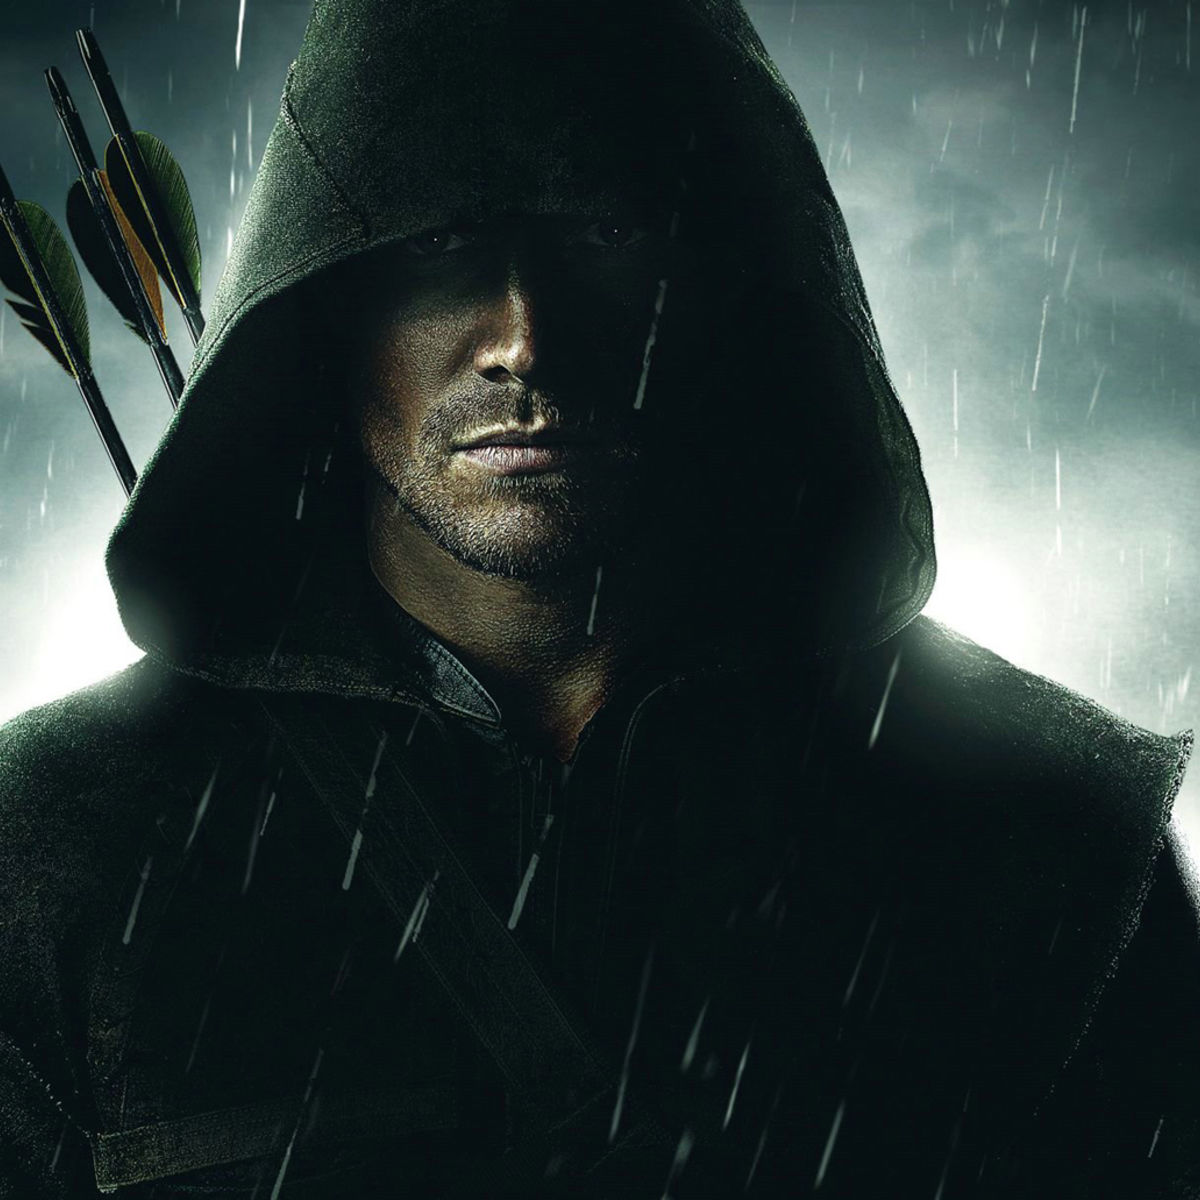 Arrow-arrow-cw-35030067-1920-1200.jpg